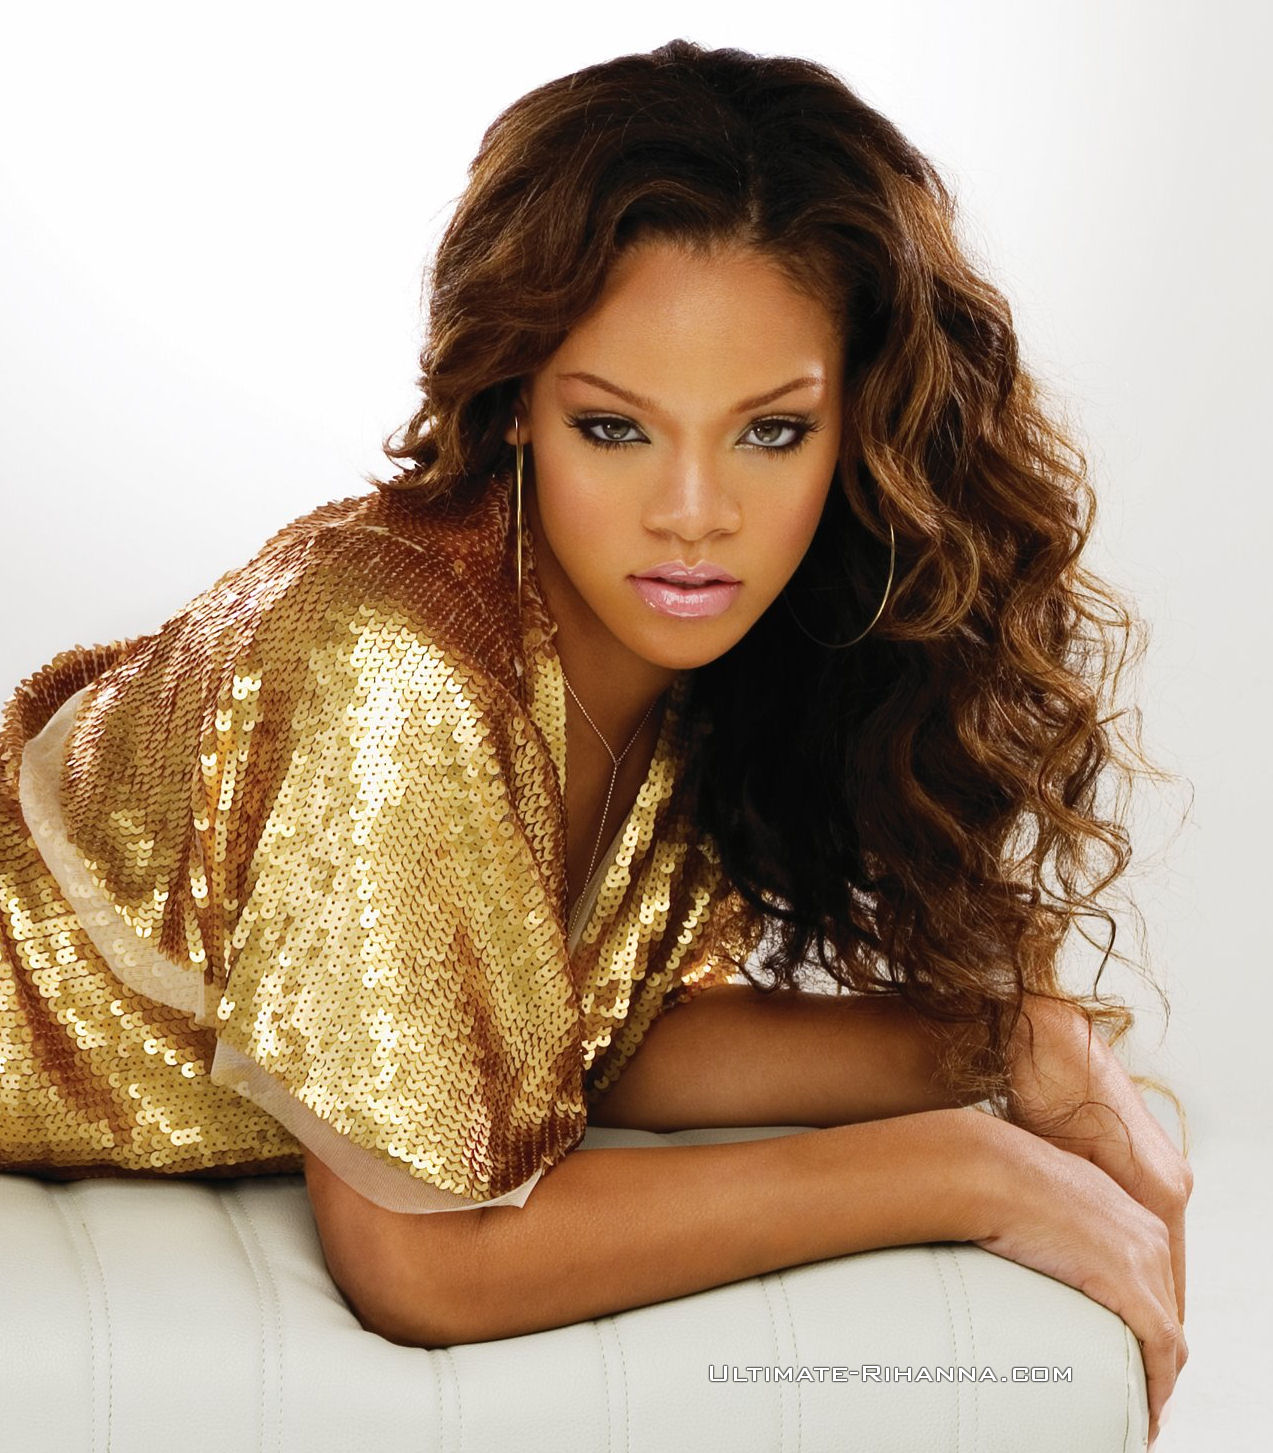 RIHANNA FOREVER: RIHANNA PHOTOS (Music Of The Sun